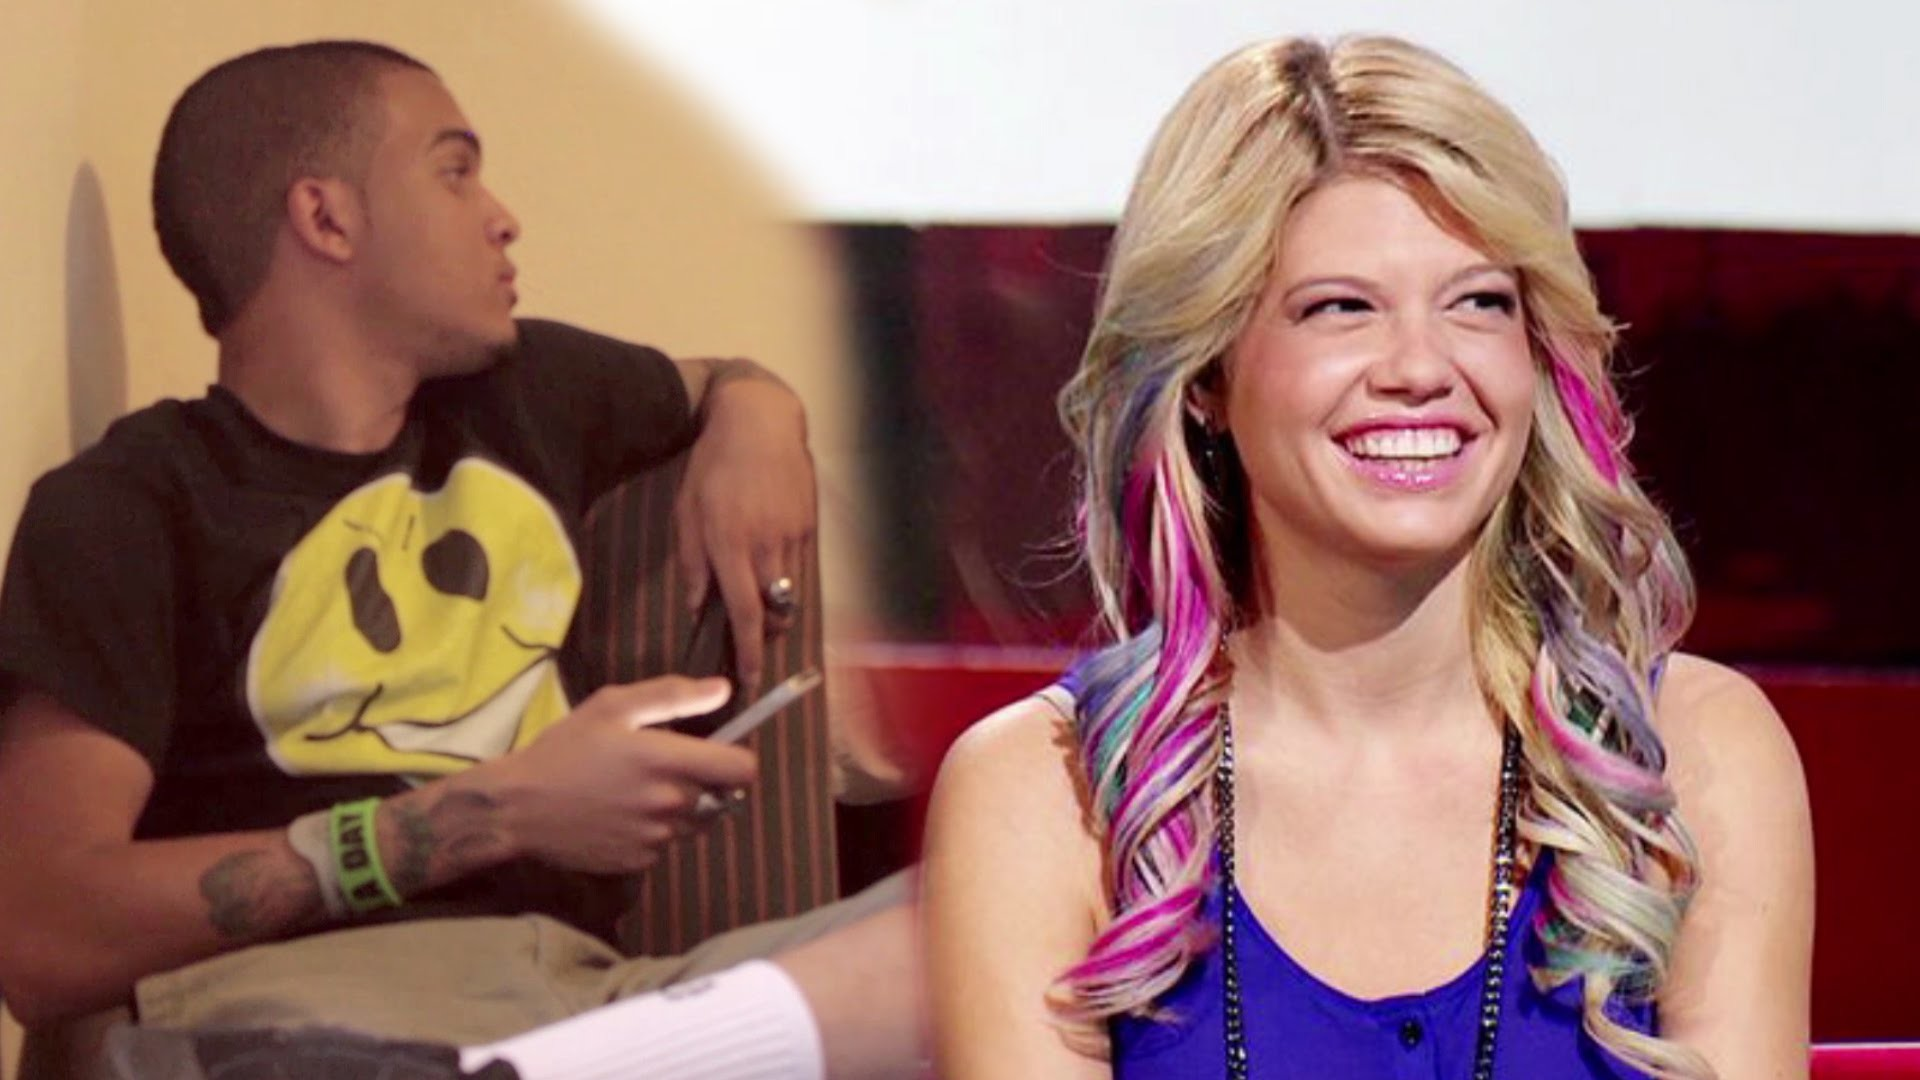 Chanel West Coast Can Laugh At Anything